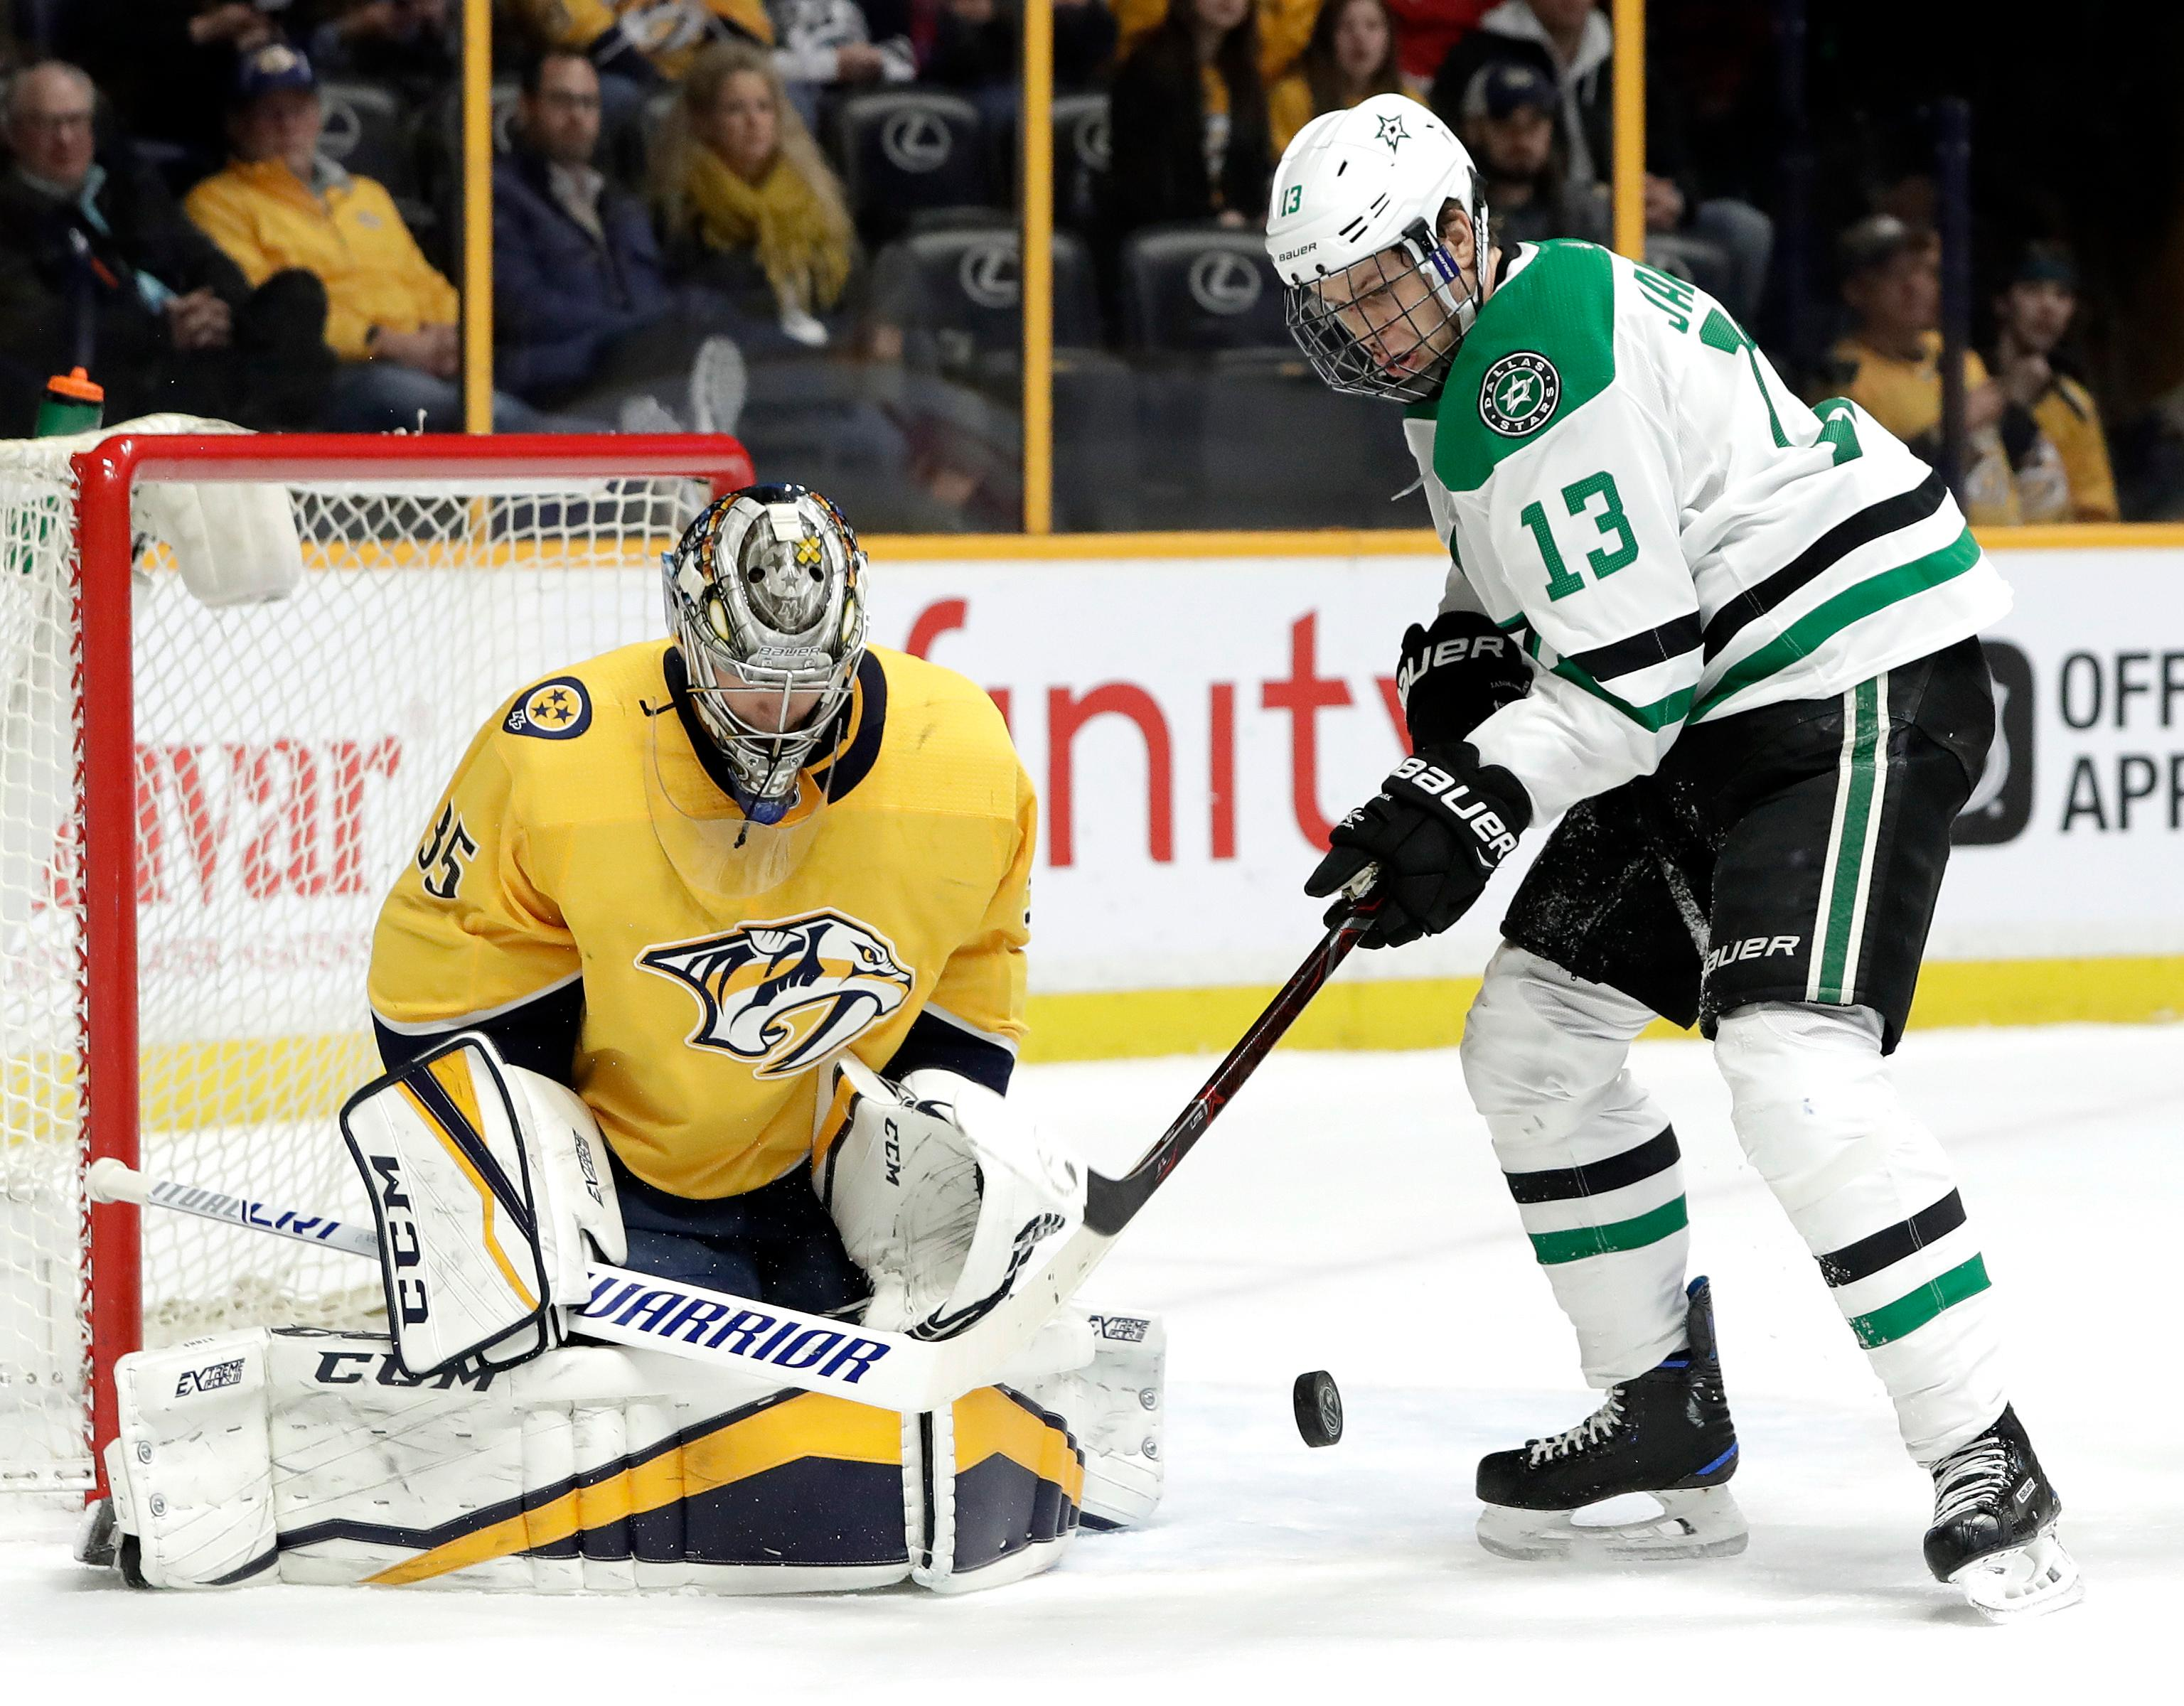 Dallas Stars center Mattias Janmark (13), of Sweden, reaches for the rebound after Nashville Predators goalie Pekka Rinne (35), of Finland, blocked a shot in the first period of an NHL hockey game Tuesday, March 6, 2018, in Nashville, Tenn. (AP Photo/Mark Humphrey)